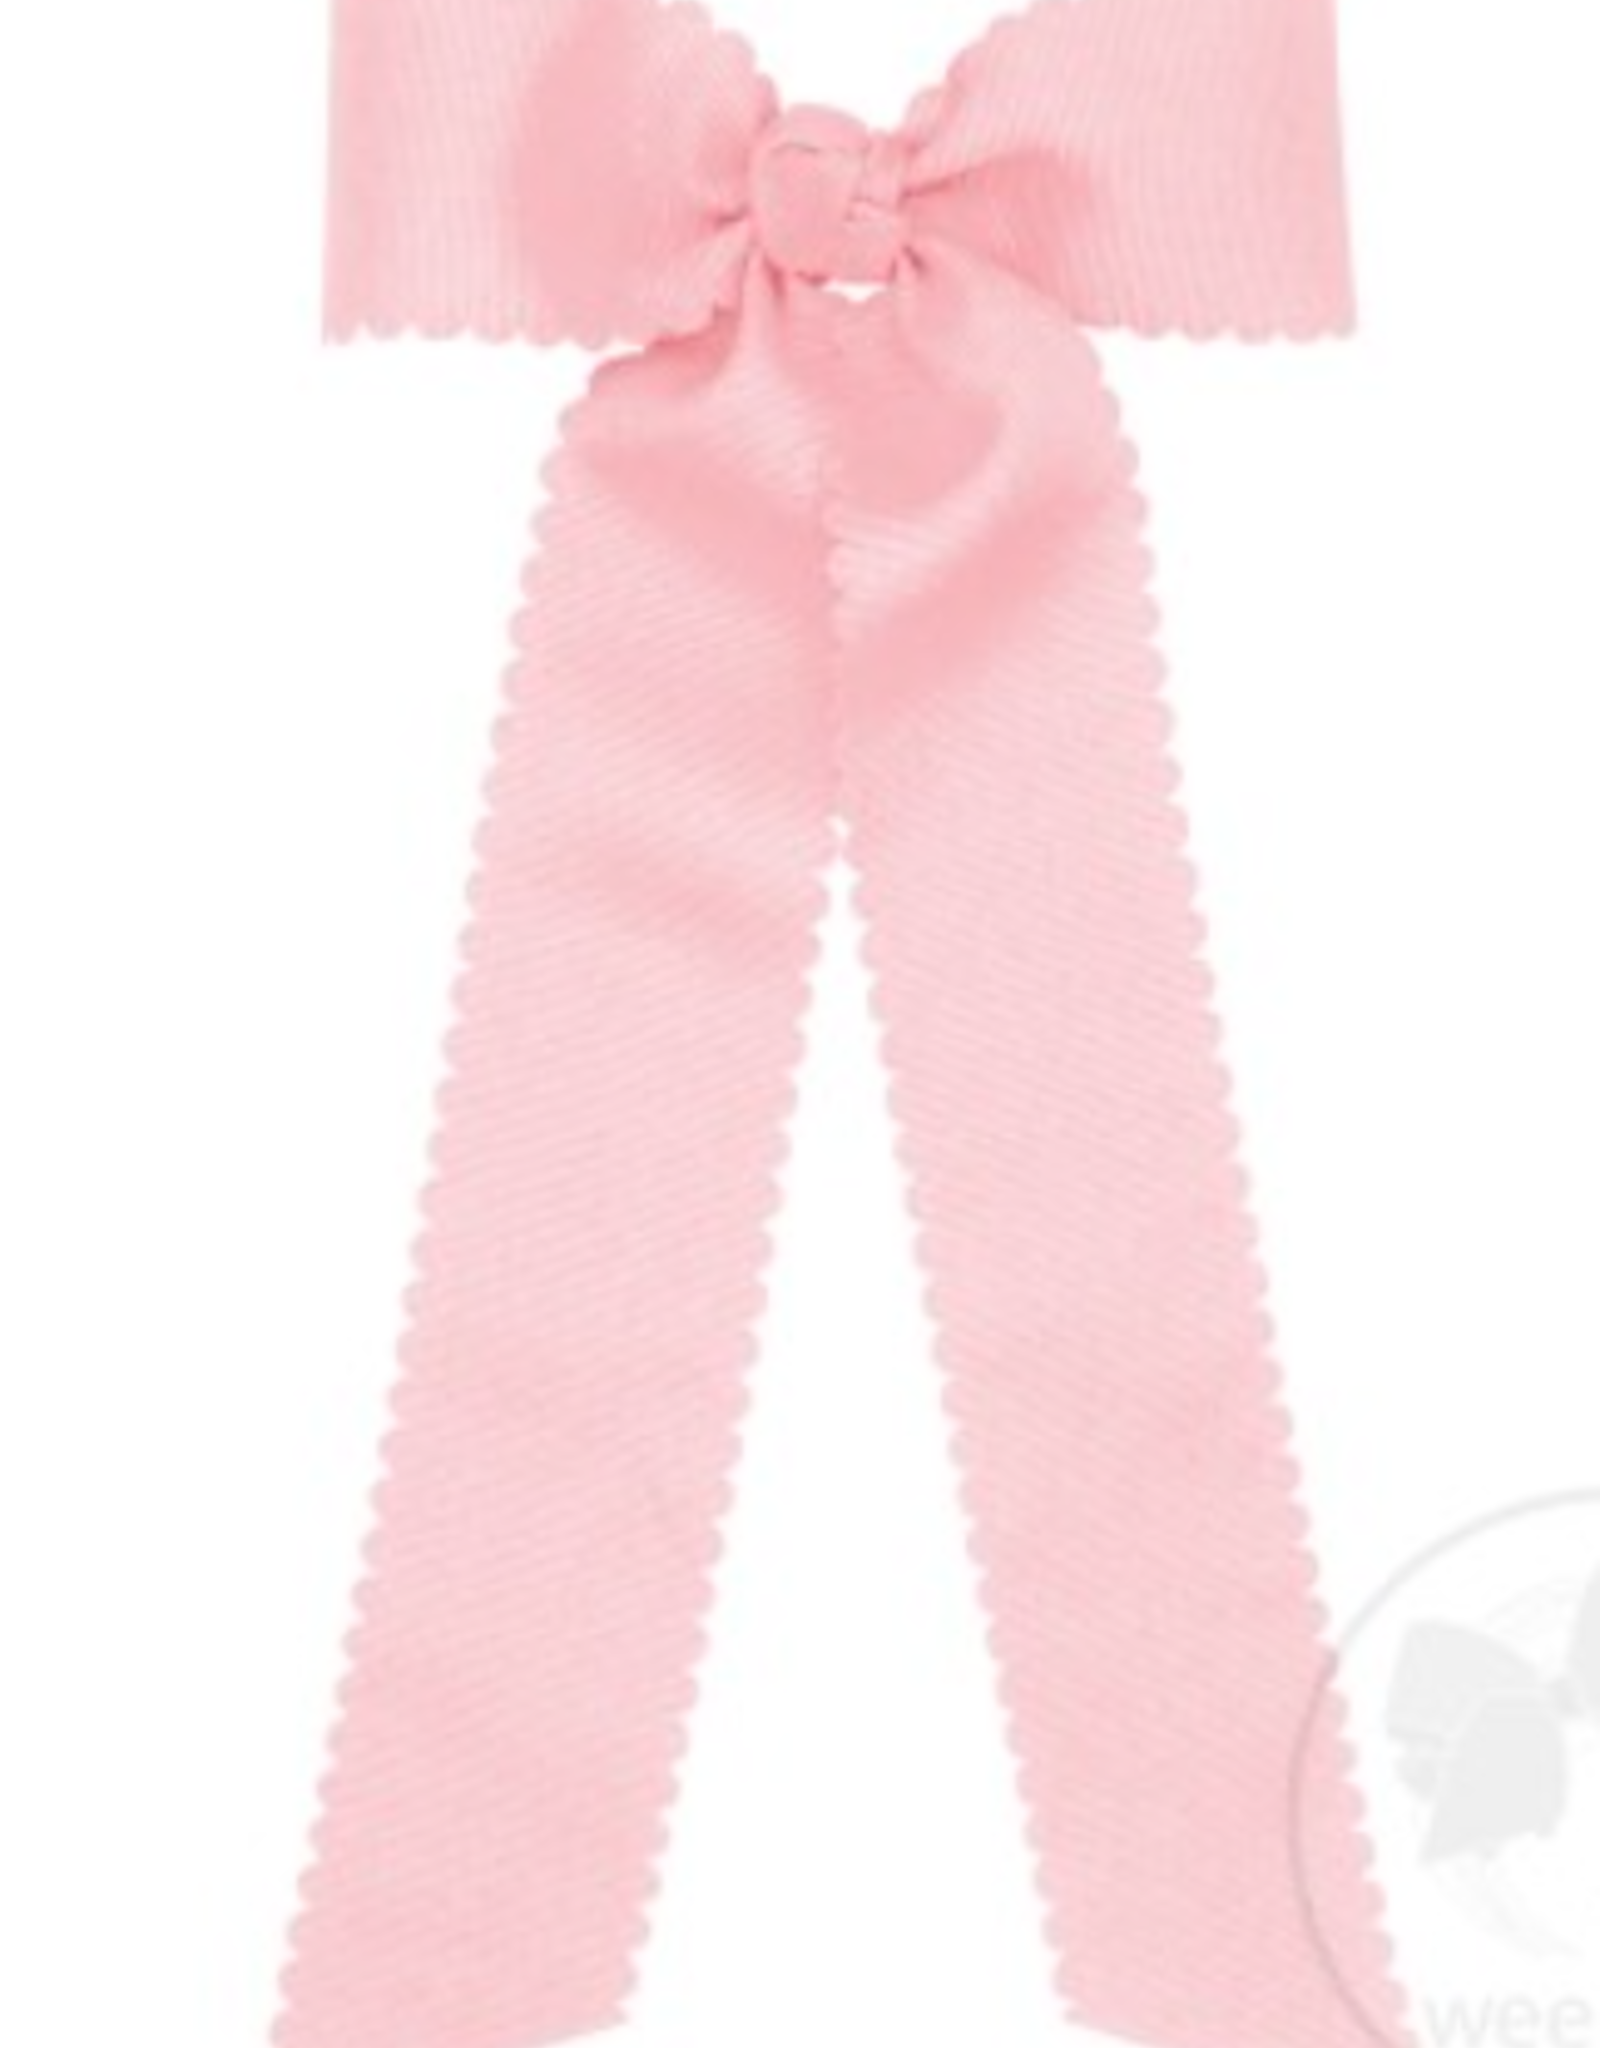 WeeOnes Medium Scalloped Edge Bow w/ Tails